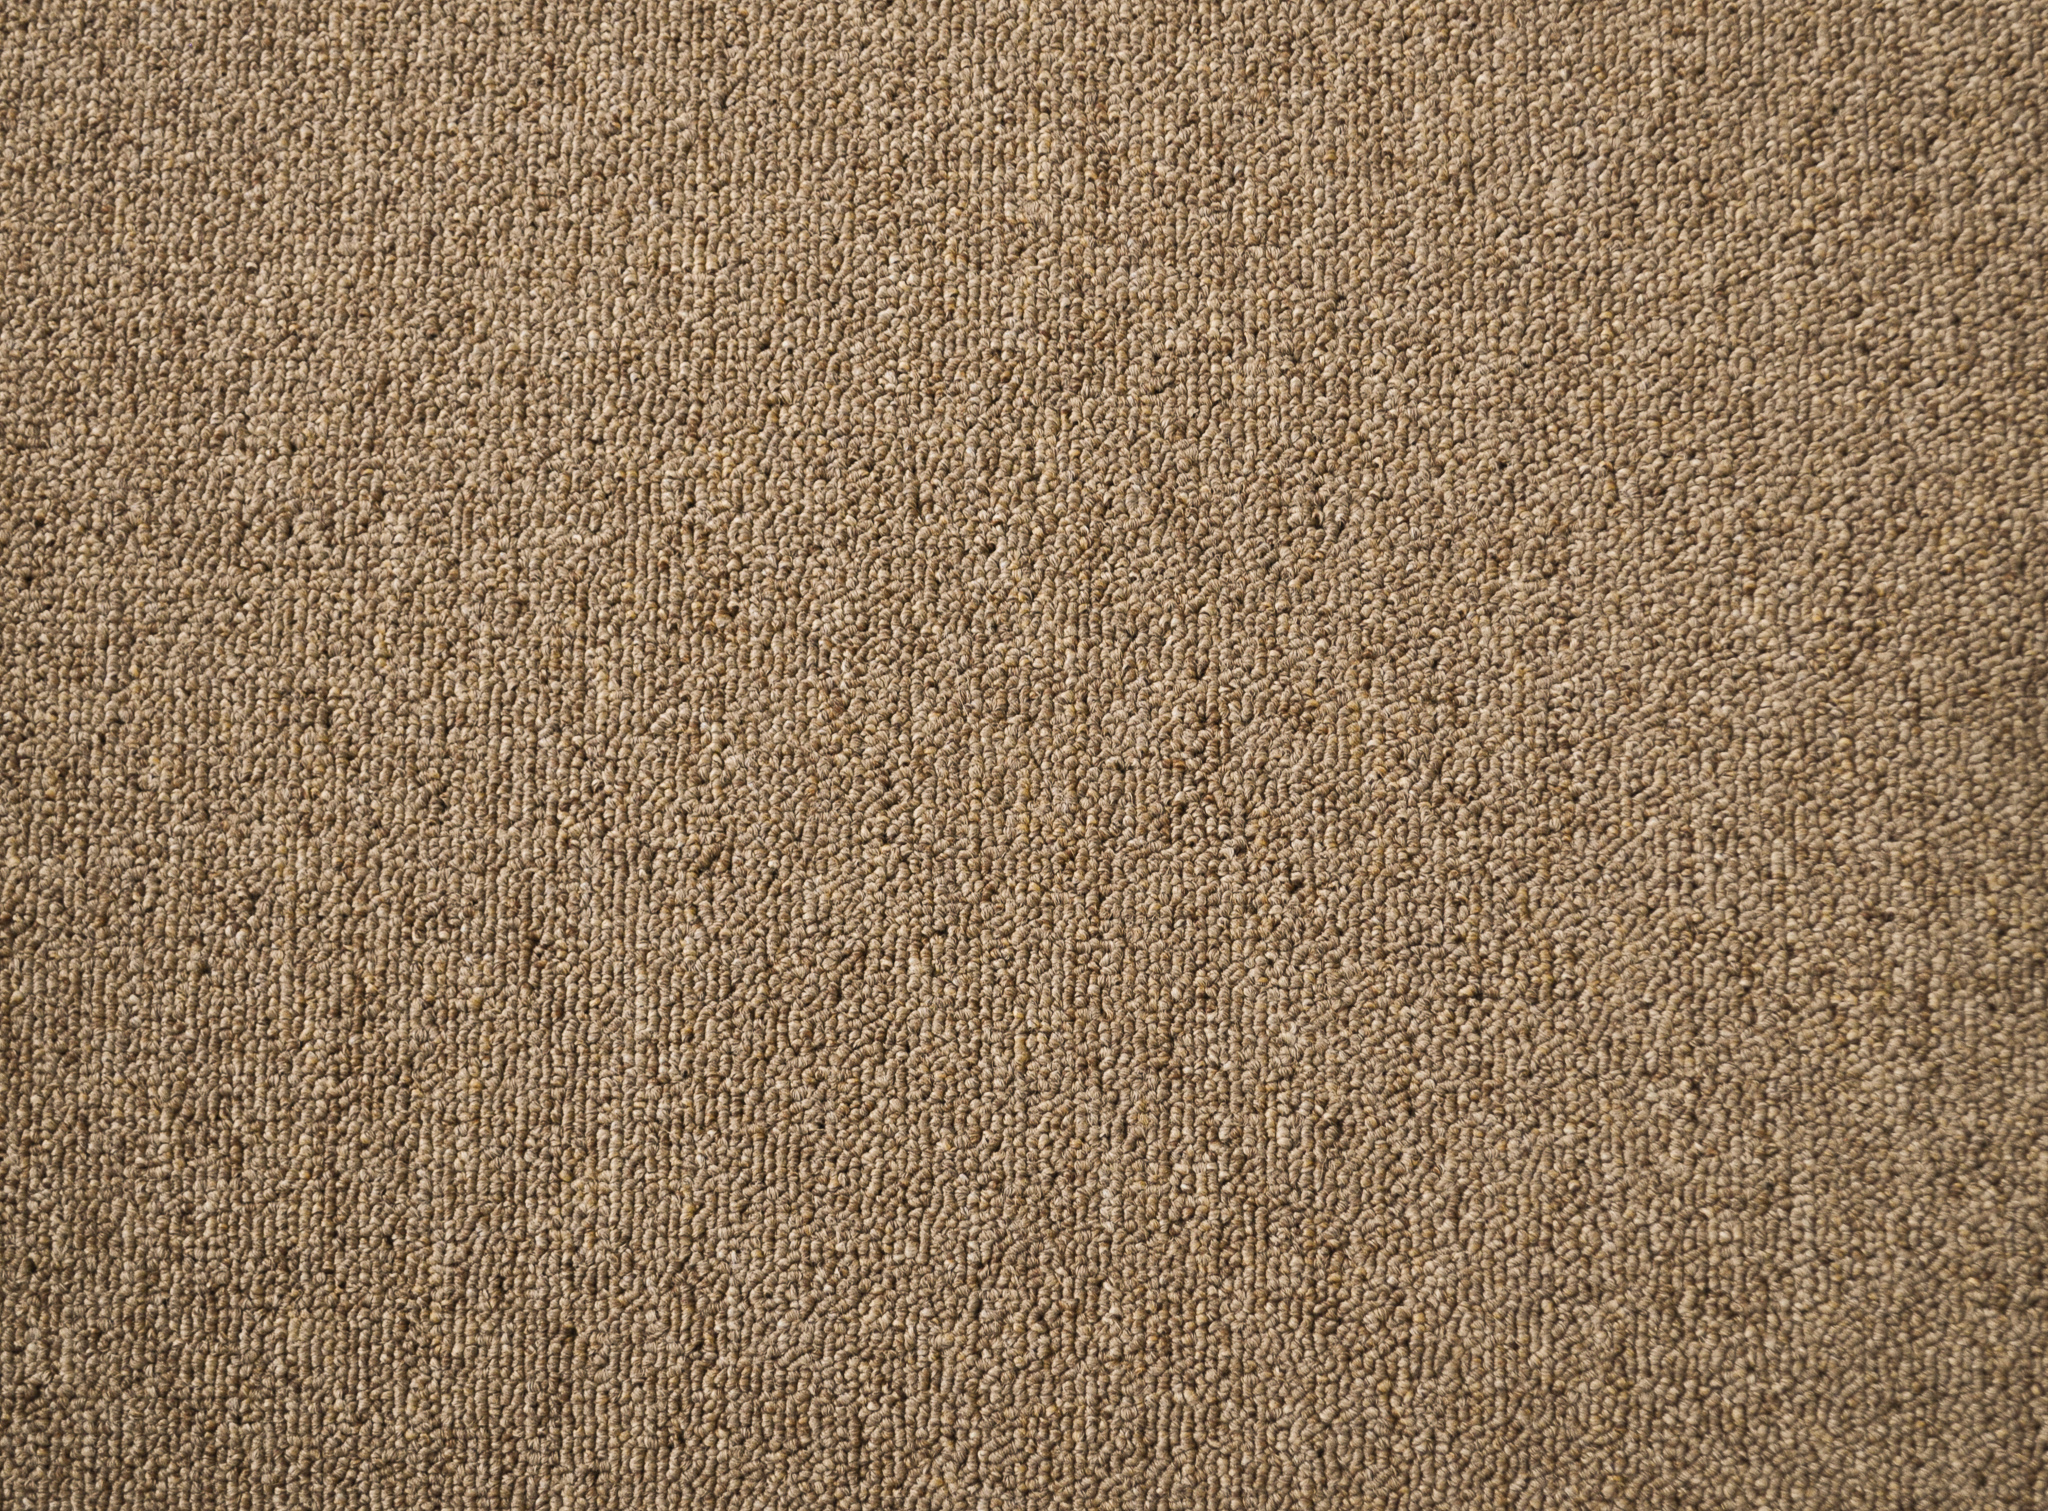 a sample of carpet of the raw umber color in the carpet range useful vallet.